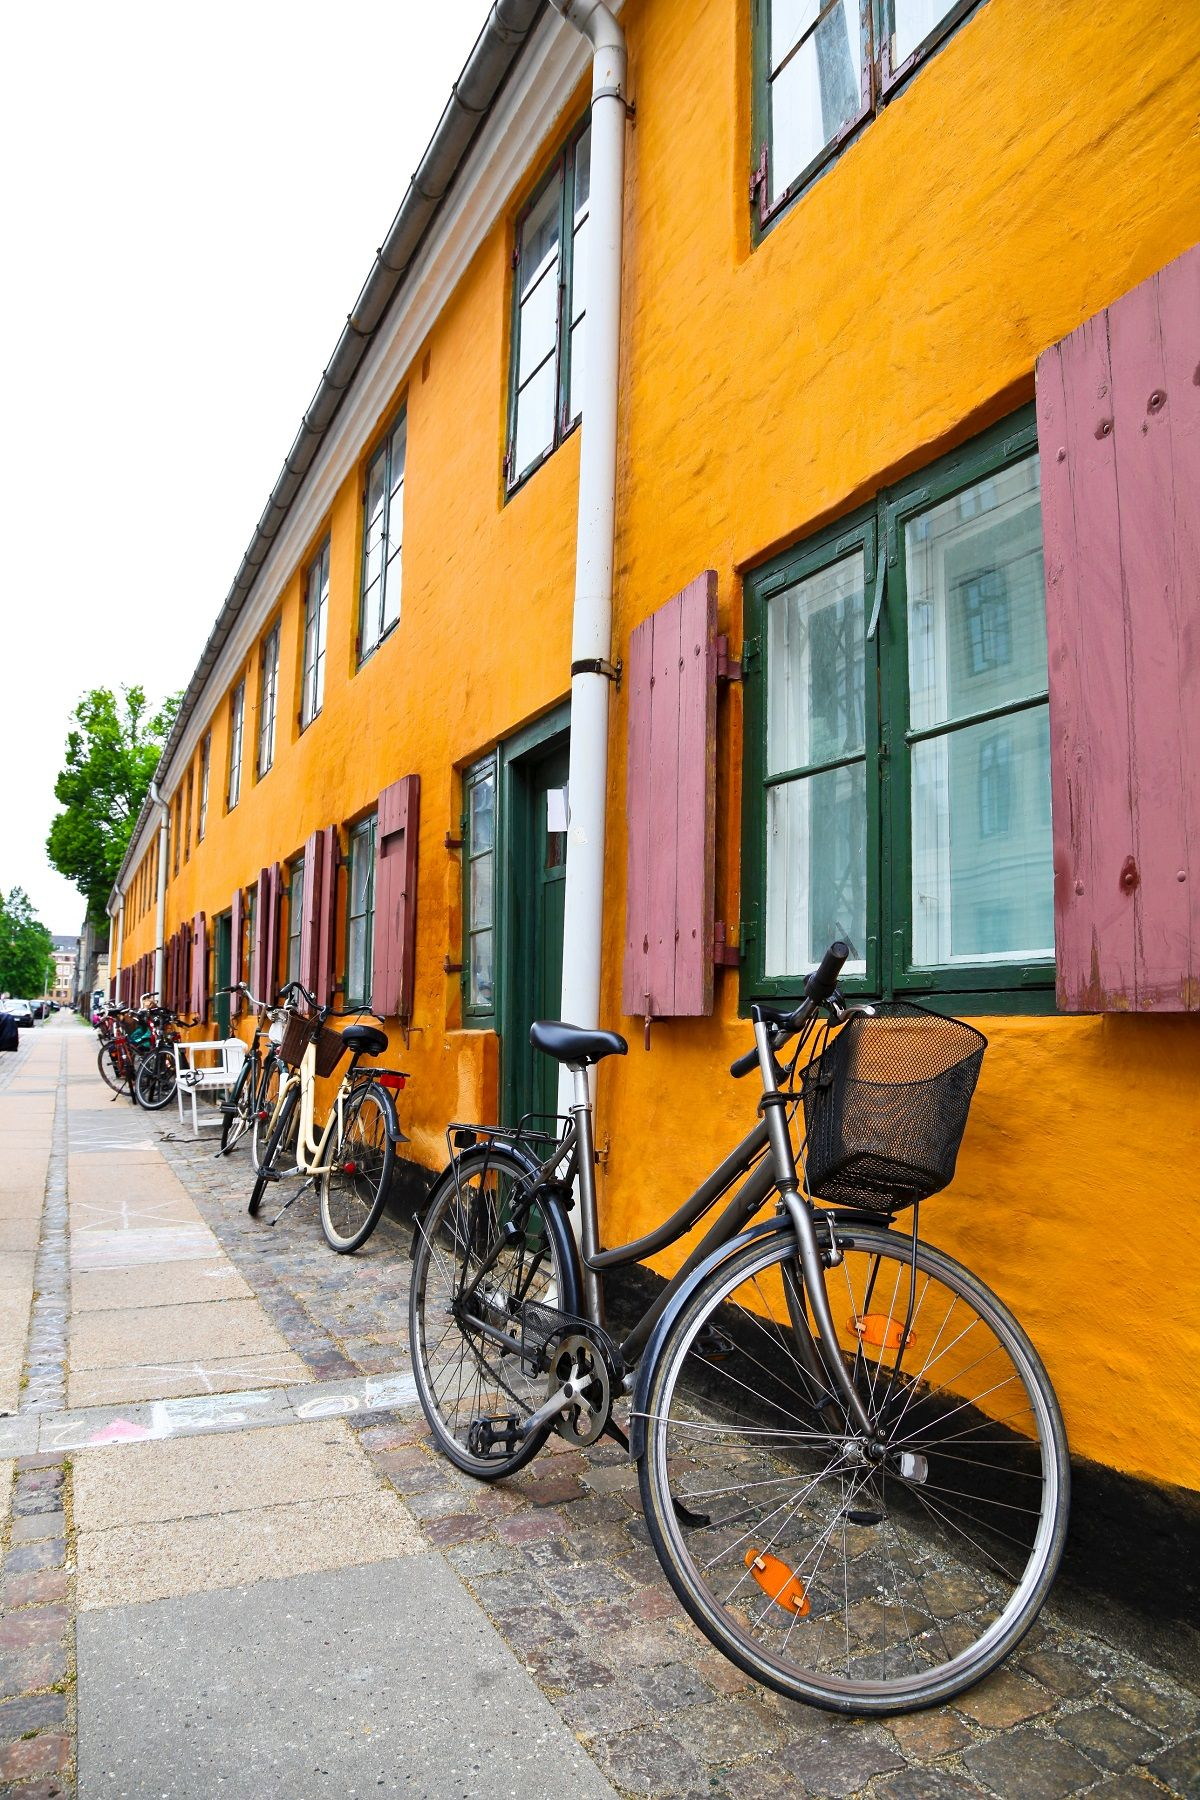 Enjoy an alternative sightseeing experience of Copenhagen on a private bike tour of the dazzling Danish capital.